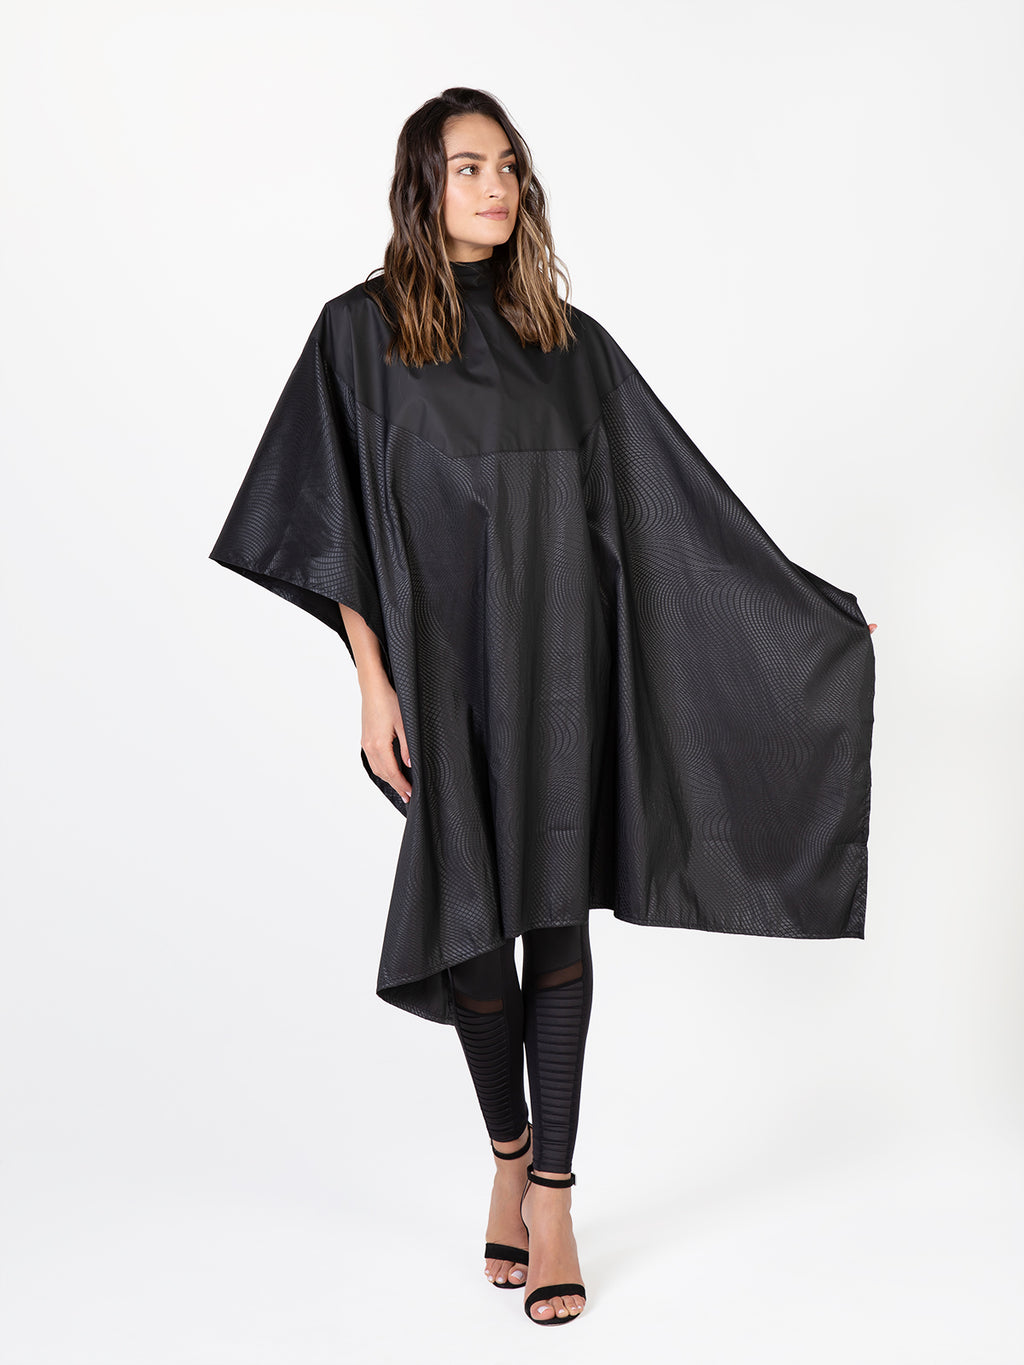 Cosmix Chemical Cape, Bleach-Proof Cape for Salons Betty Dain